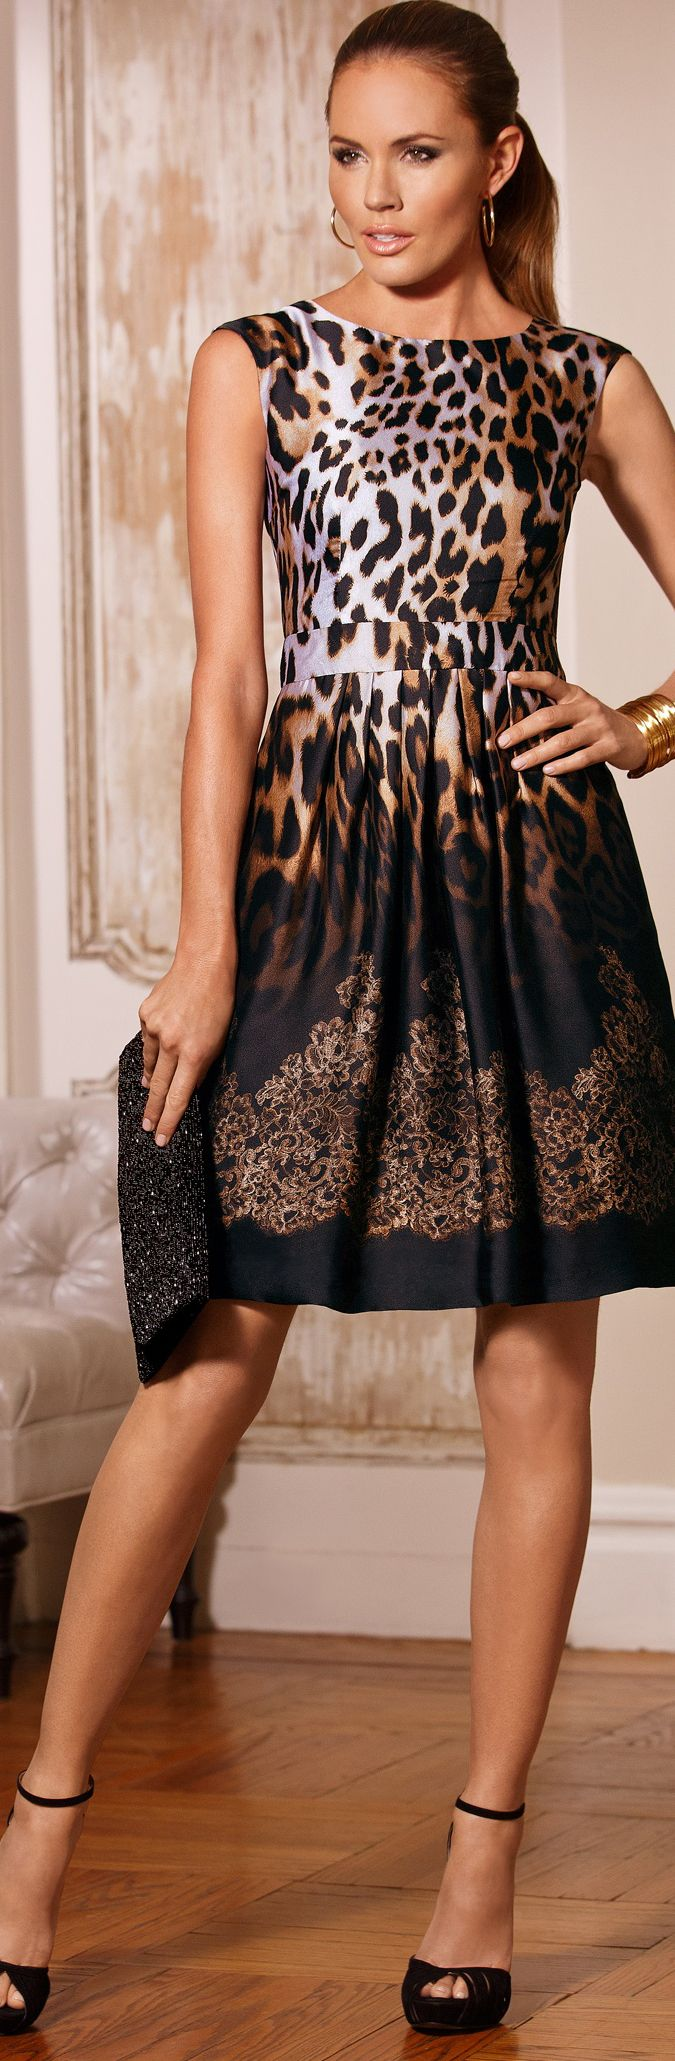 Animal Lace Ombre Party Dress